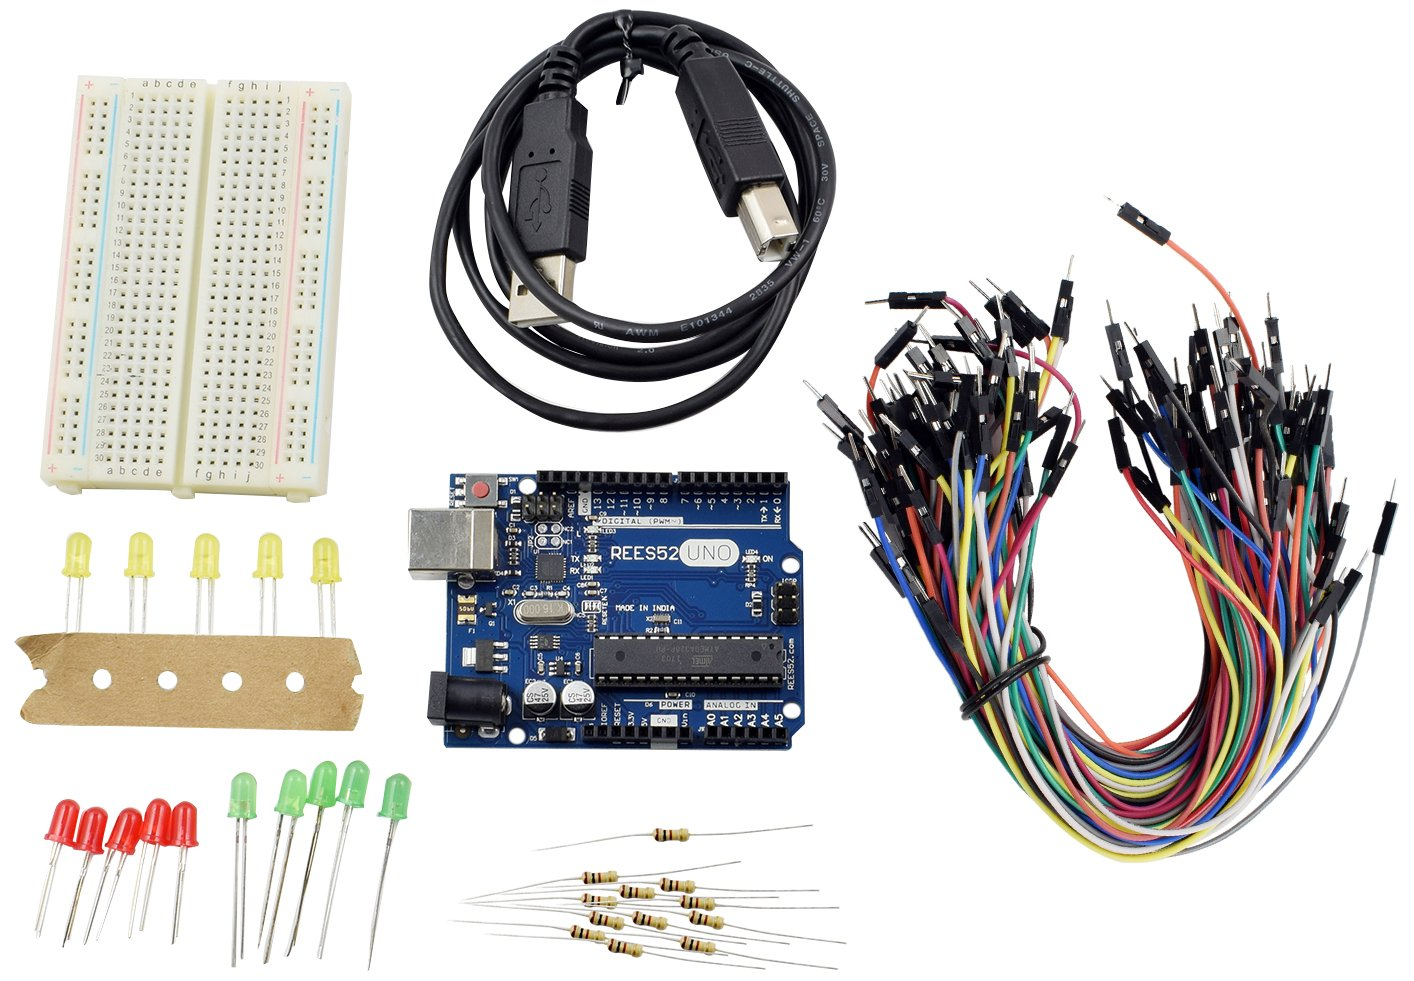 Rees52 R3 400 Basic Starter Kit Arduino Uno Breadboard Led Jumper Prototyping Wiring Kits With Wire For Industrial Scientific